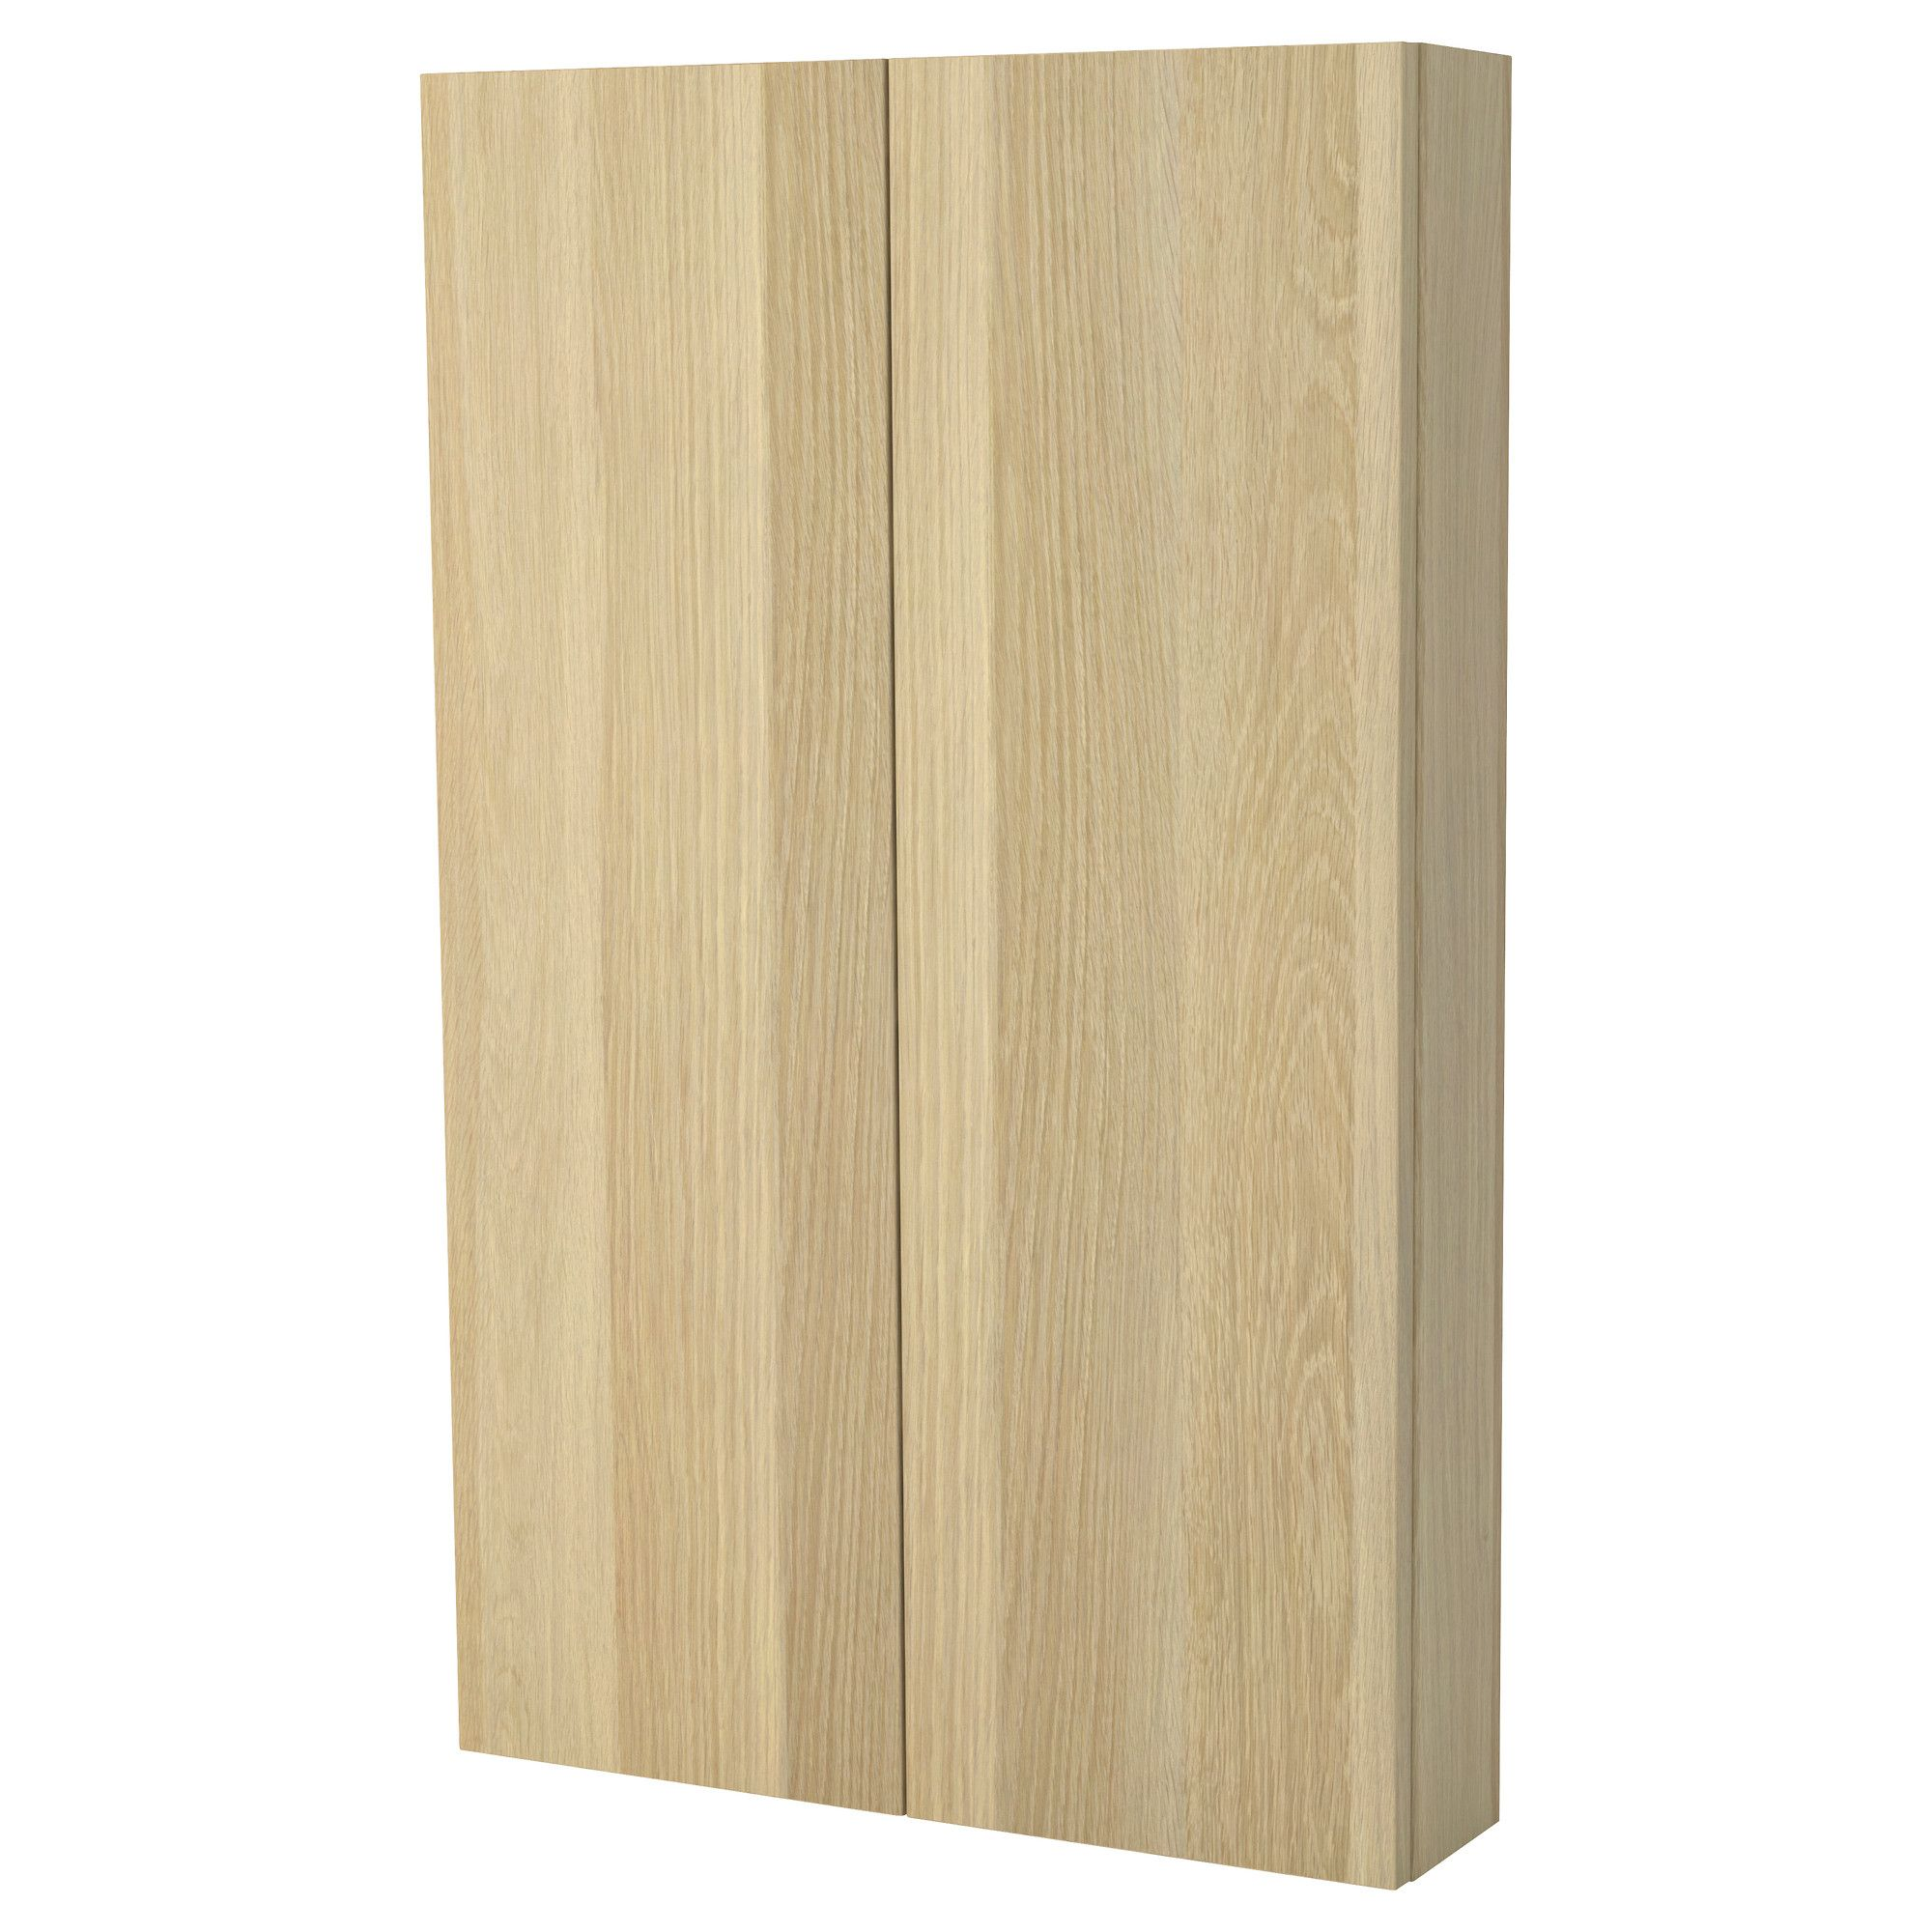 godmorgon wall cabinet with 2 doors white stained oak effect rh pinterest com  ikea godmorgon wall cabinet 2 doors